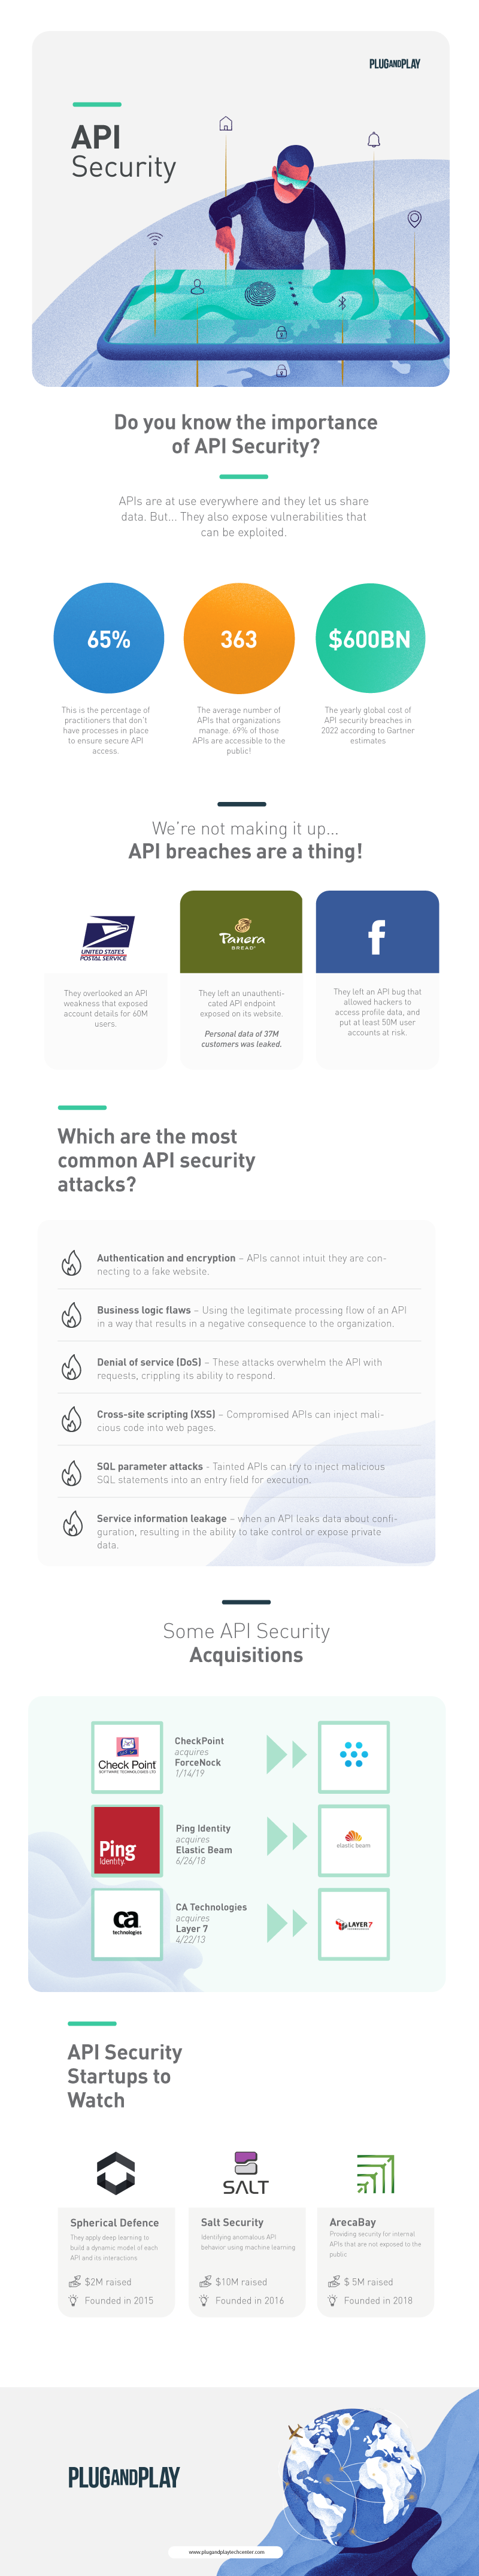 API Security Infographic Cyber